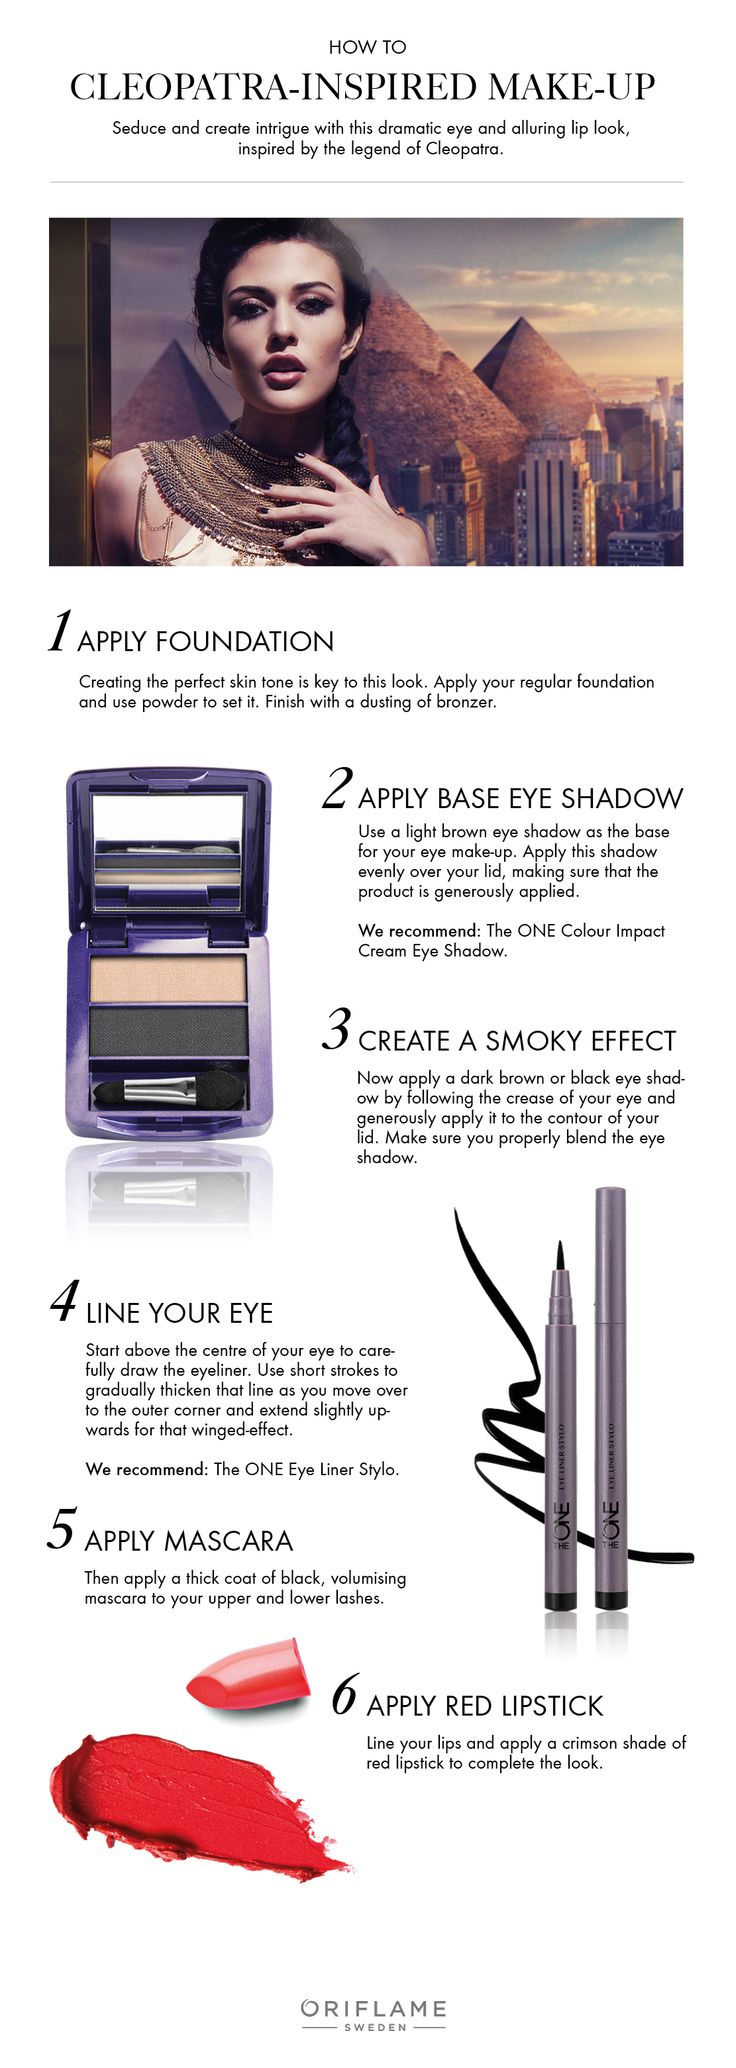 Inspired by Cleopatra's make-up? So are we! Our tutorial makes it easy to recreate her alluring look and to start seducing.